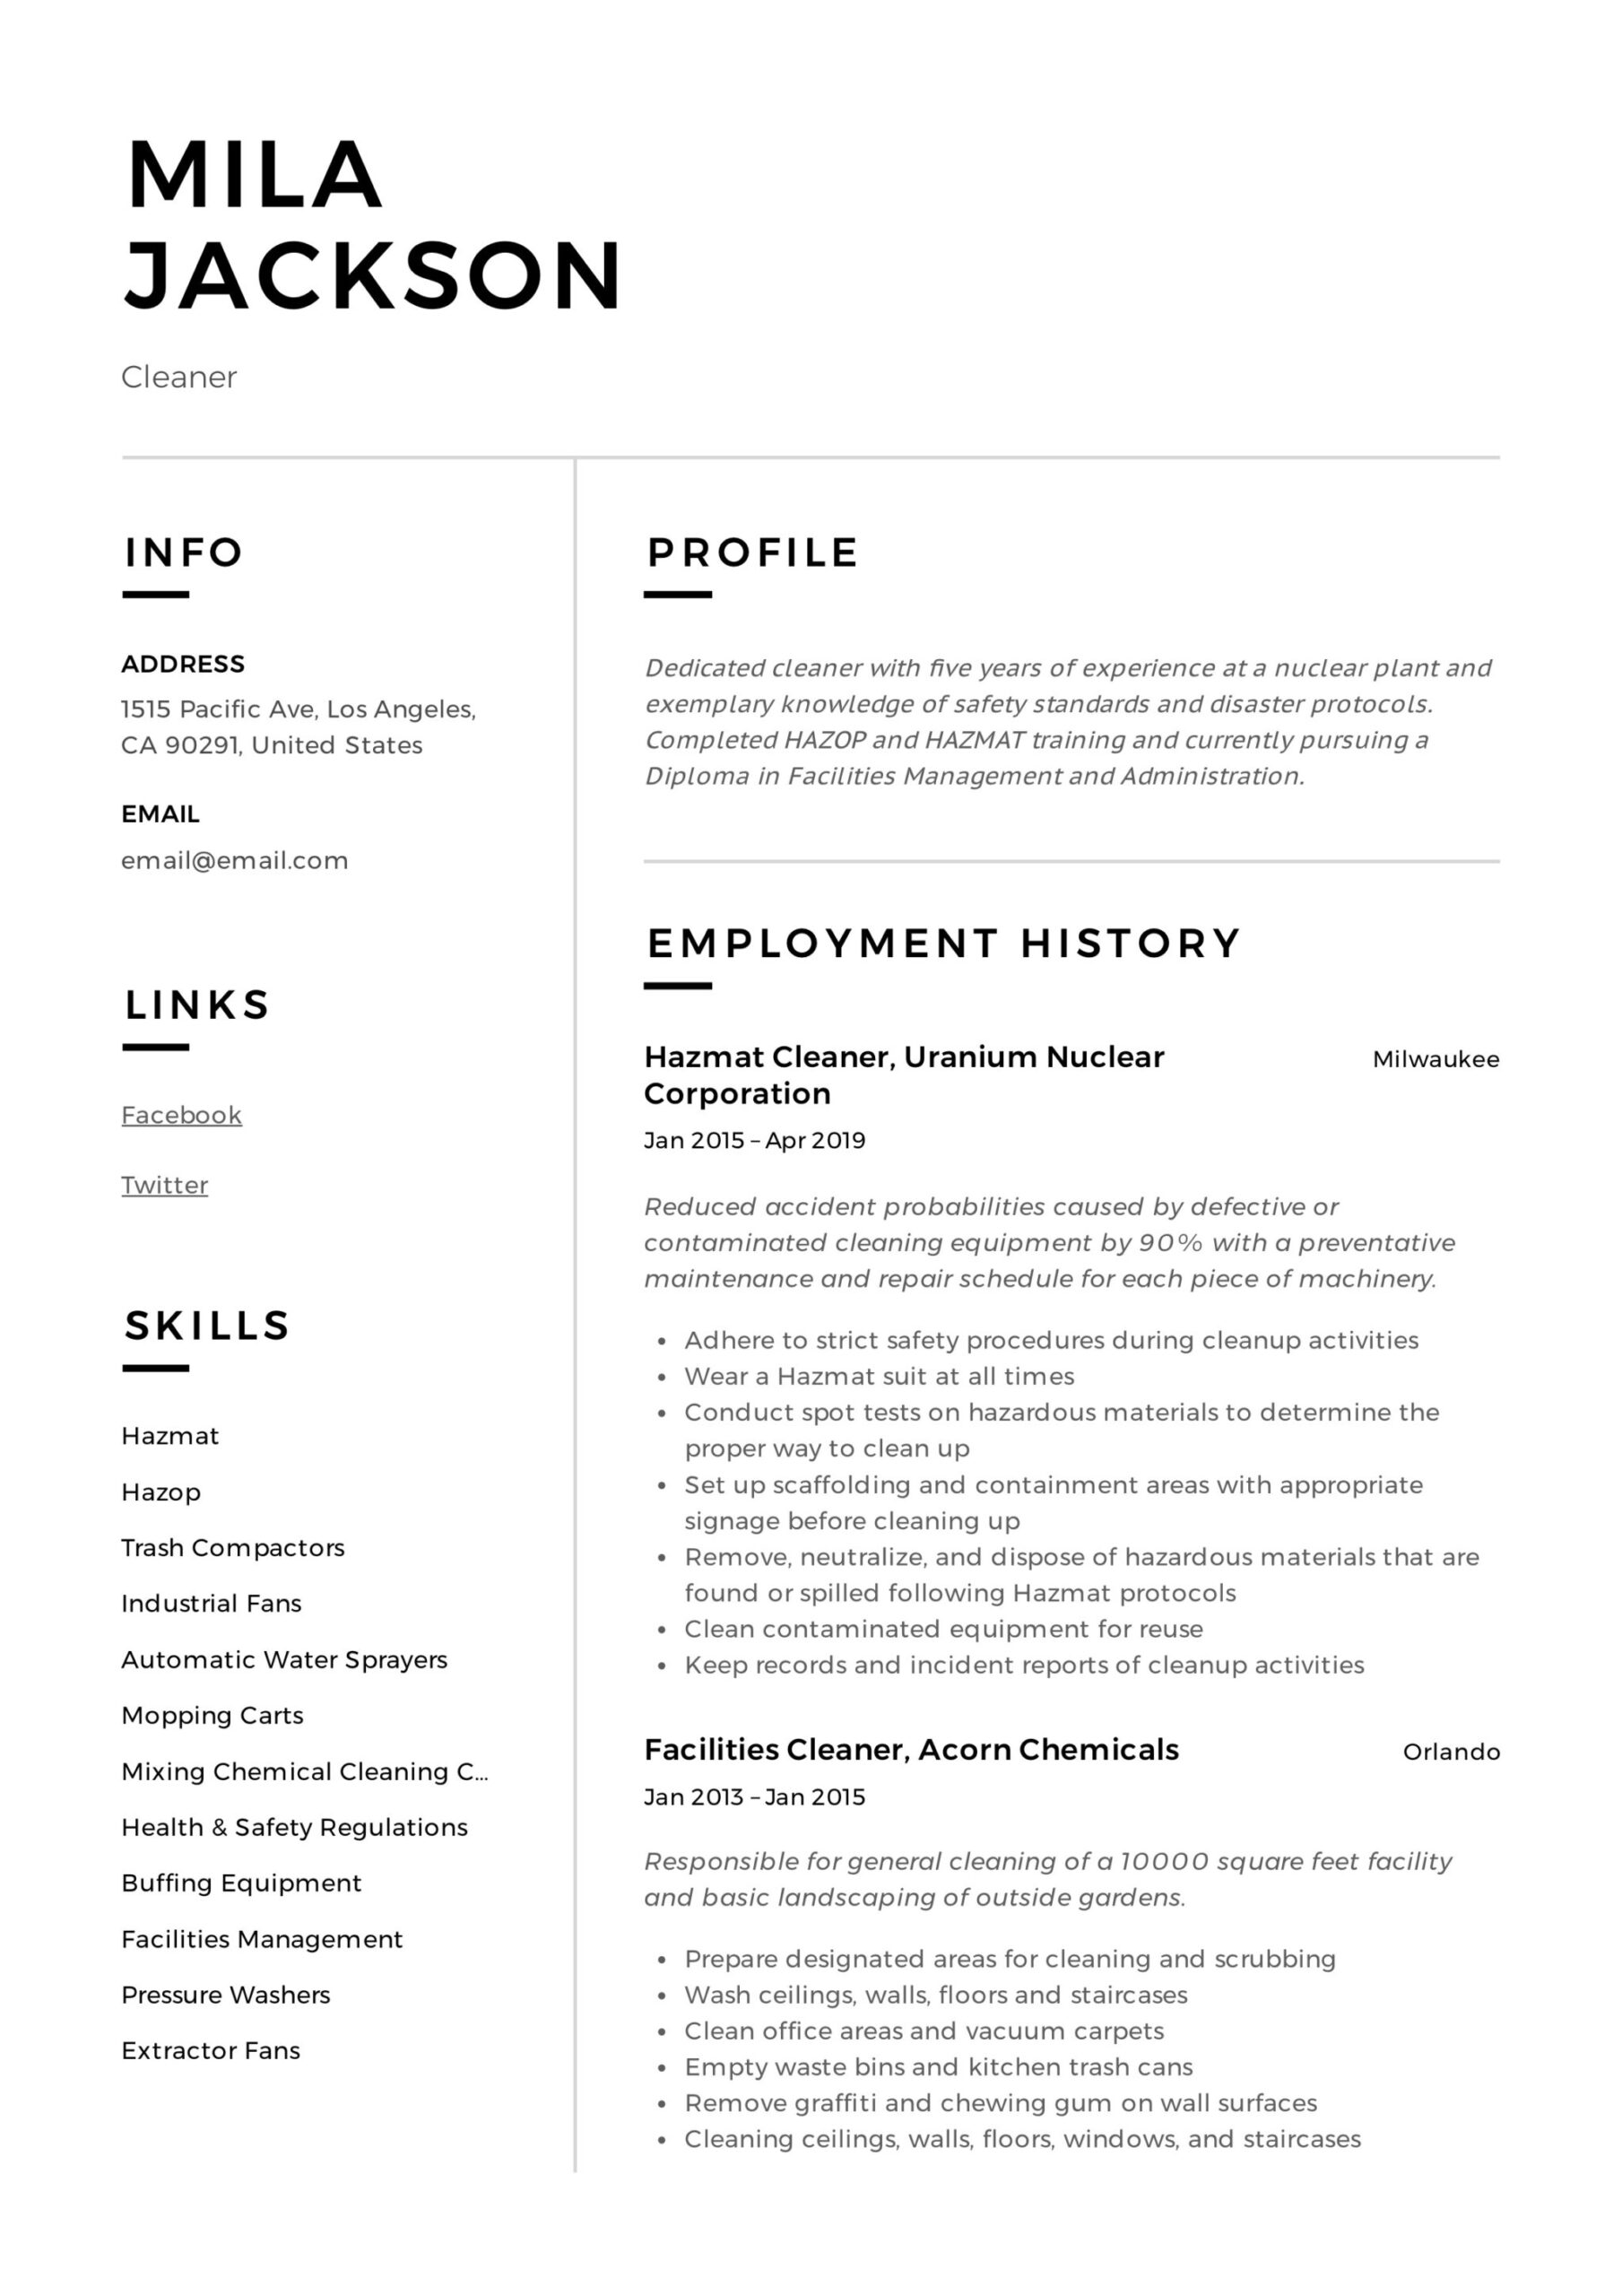 cleaner resume writing guide templates pdf cleaning mila louis vuitton fund development Resume Cleaning Resume Download